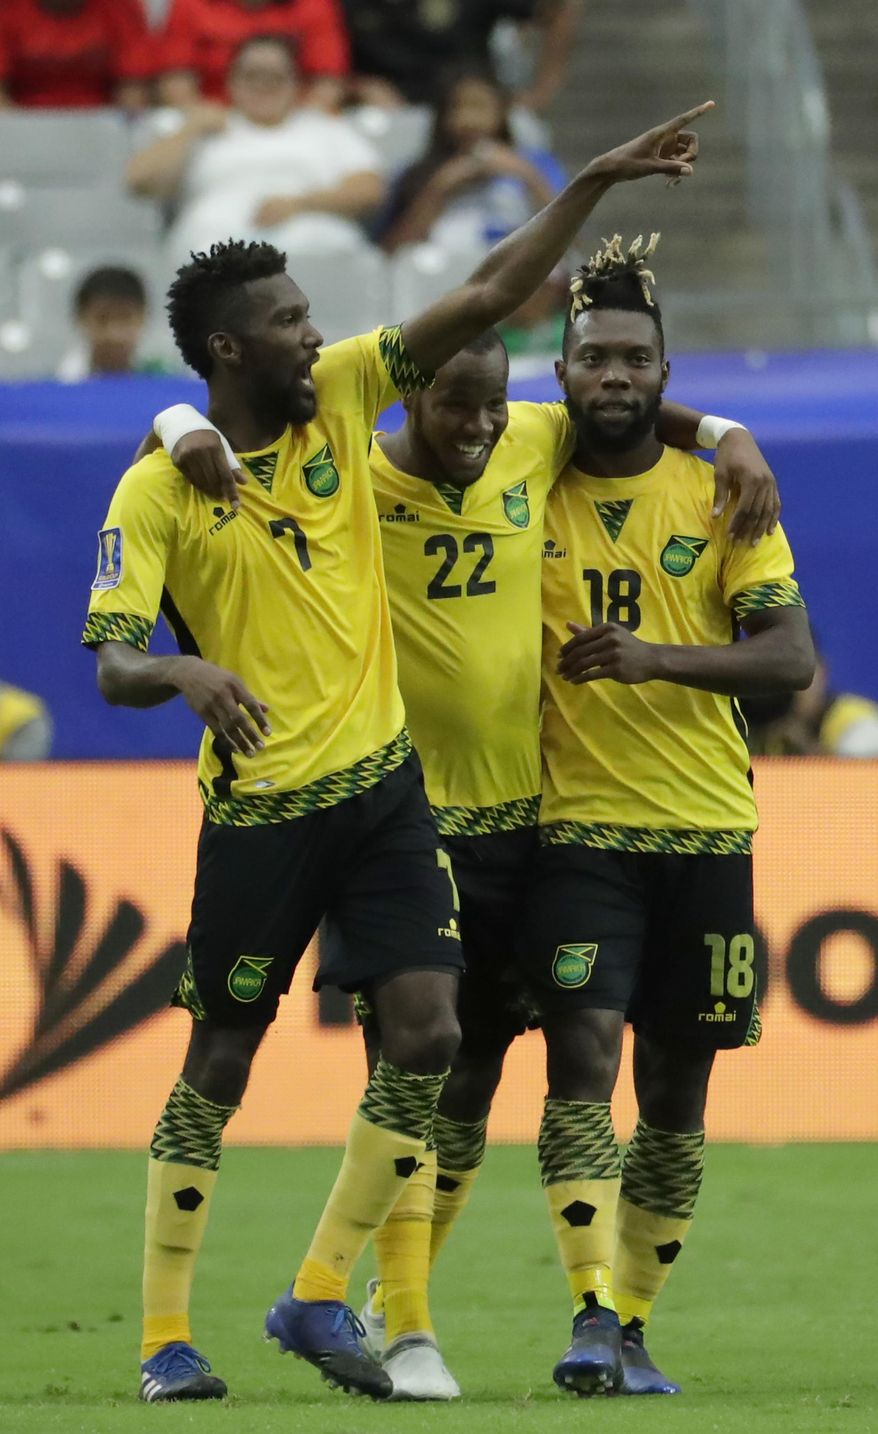 Jamaica's Romario Williams (22) celebrates with teammates Shaun Francis (7) and Owayne Gordon (18) after Williams scored his team's second goal against Canada during a CONCACAF Gold Cup quarterfinal soccer match, Thursday, July 20, 2017, in Glendale, Ariz. (AP Photo/Matt York)